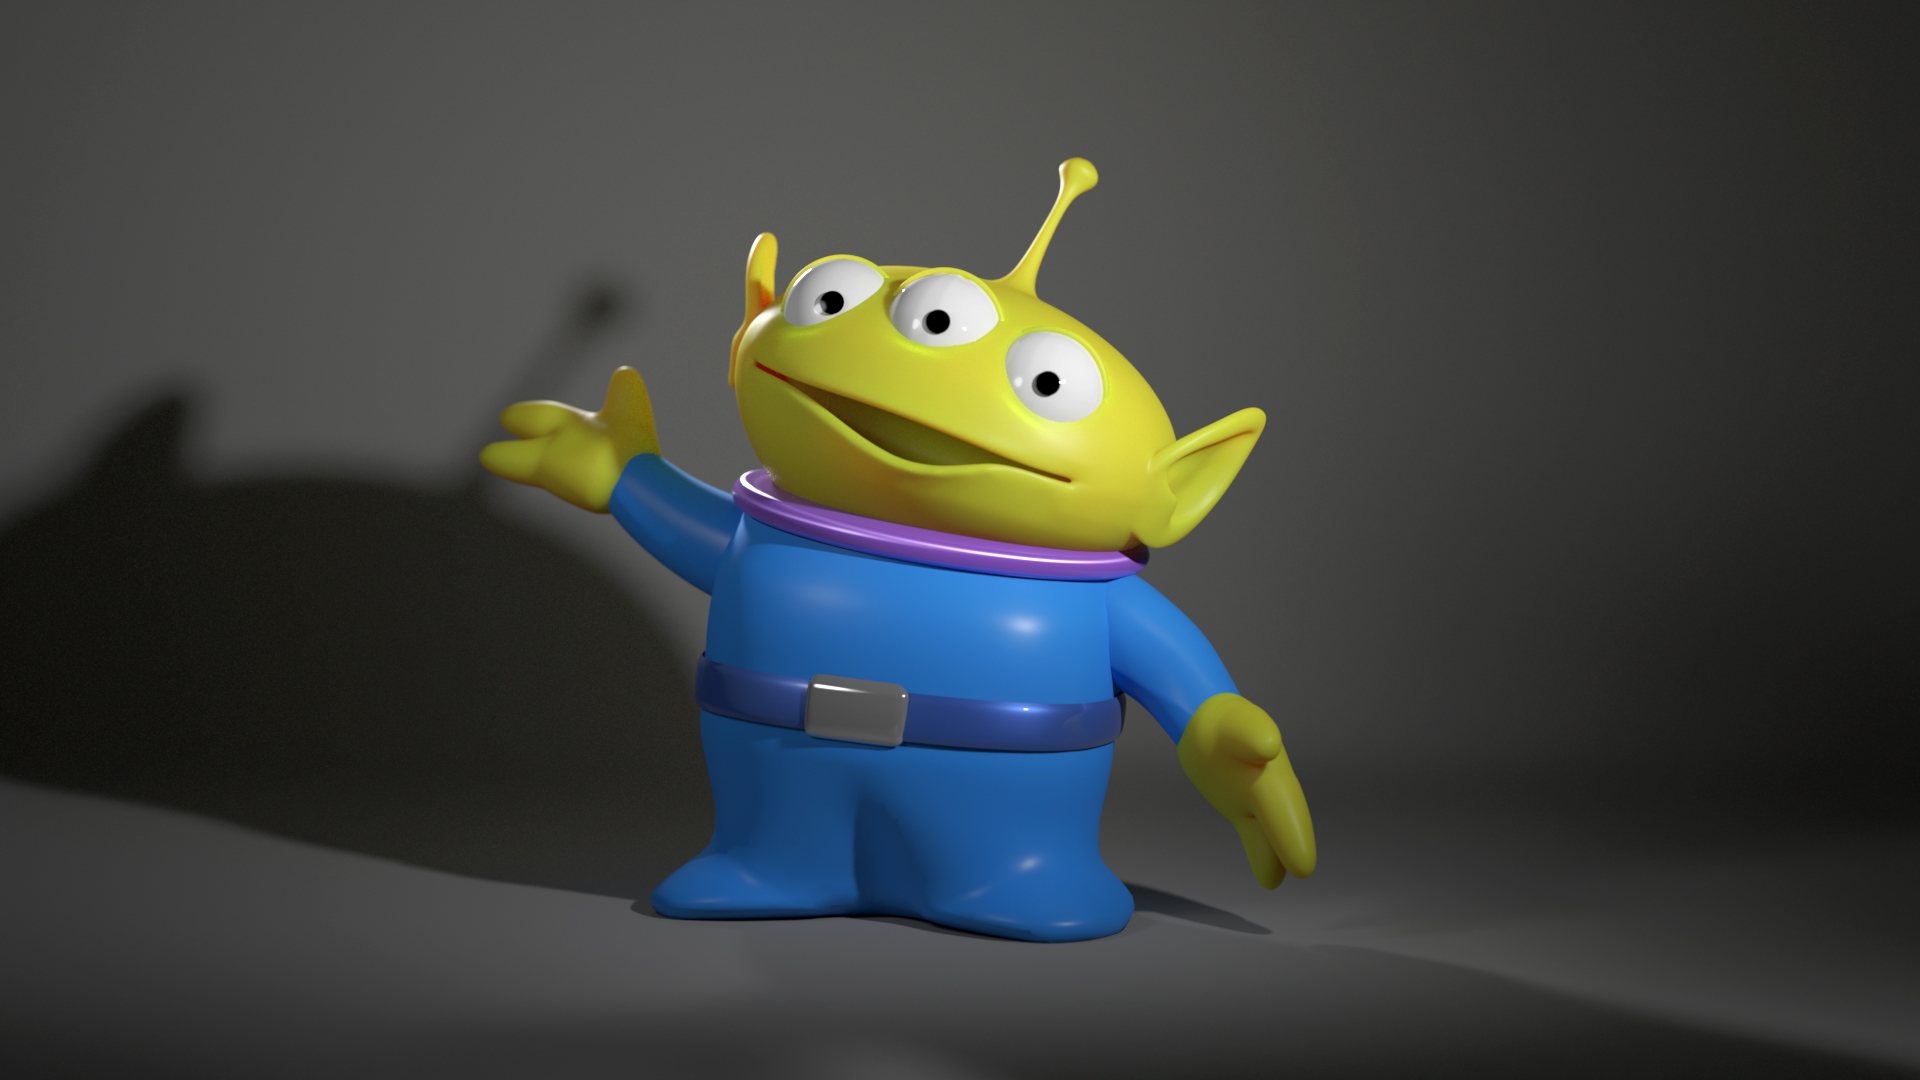 Toy Story Alien Rendered With RIS Using The Path Tracer And Built In